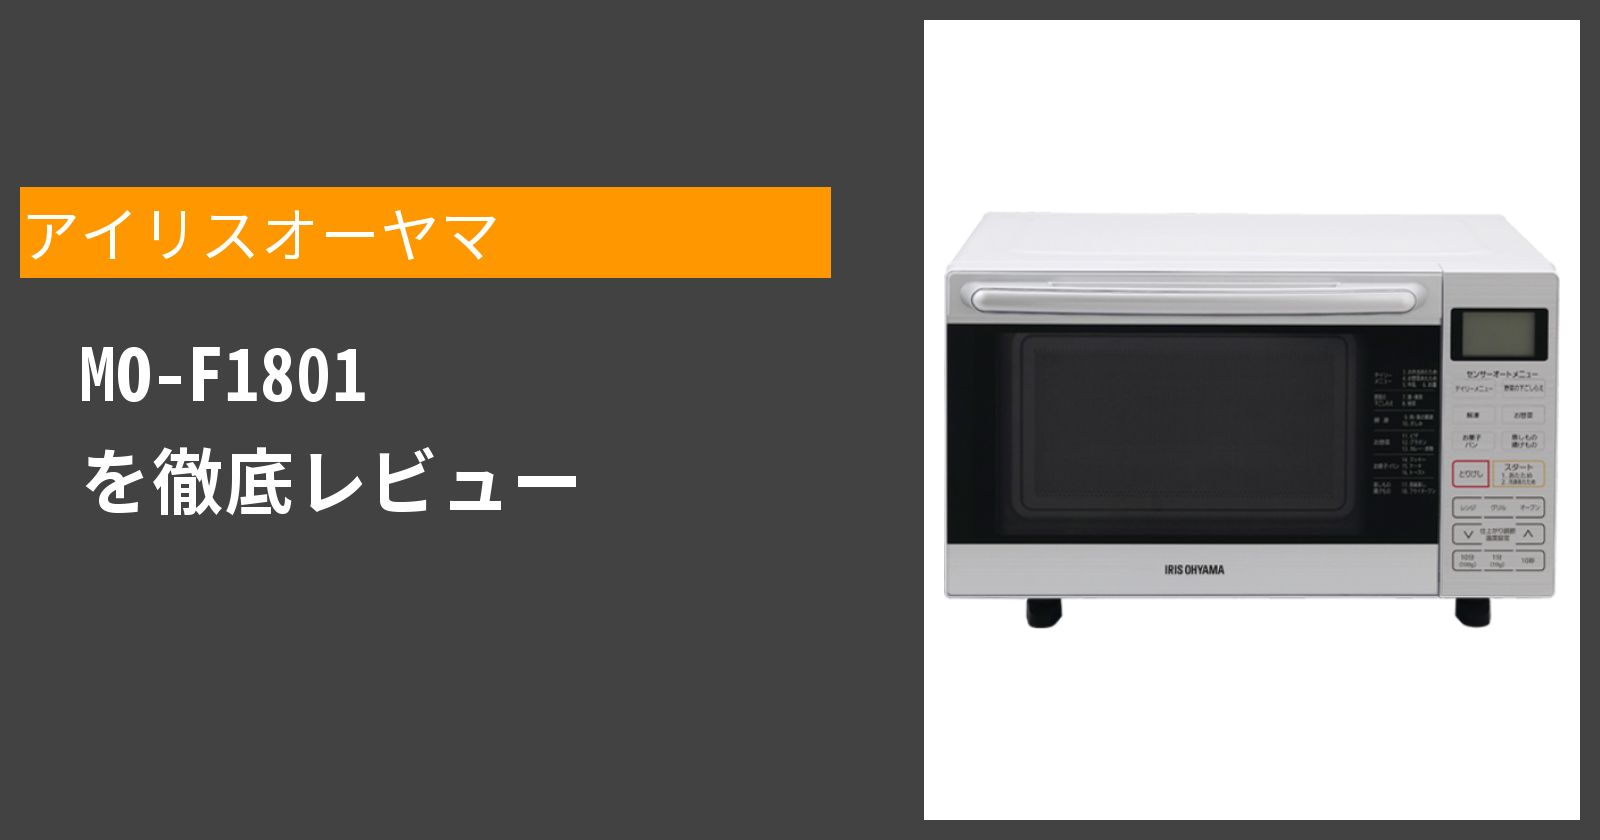 MO-F1801を徹底評価